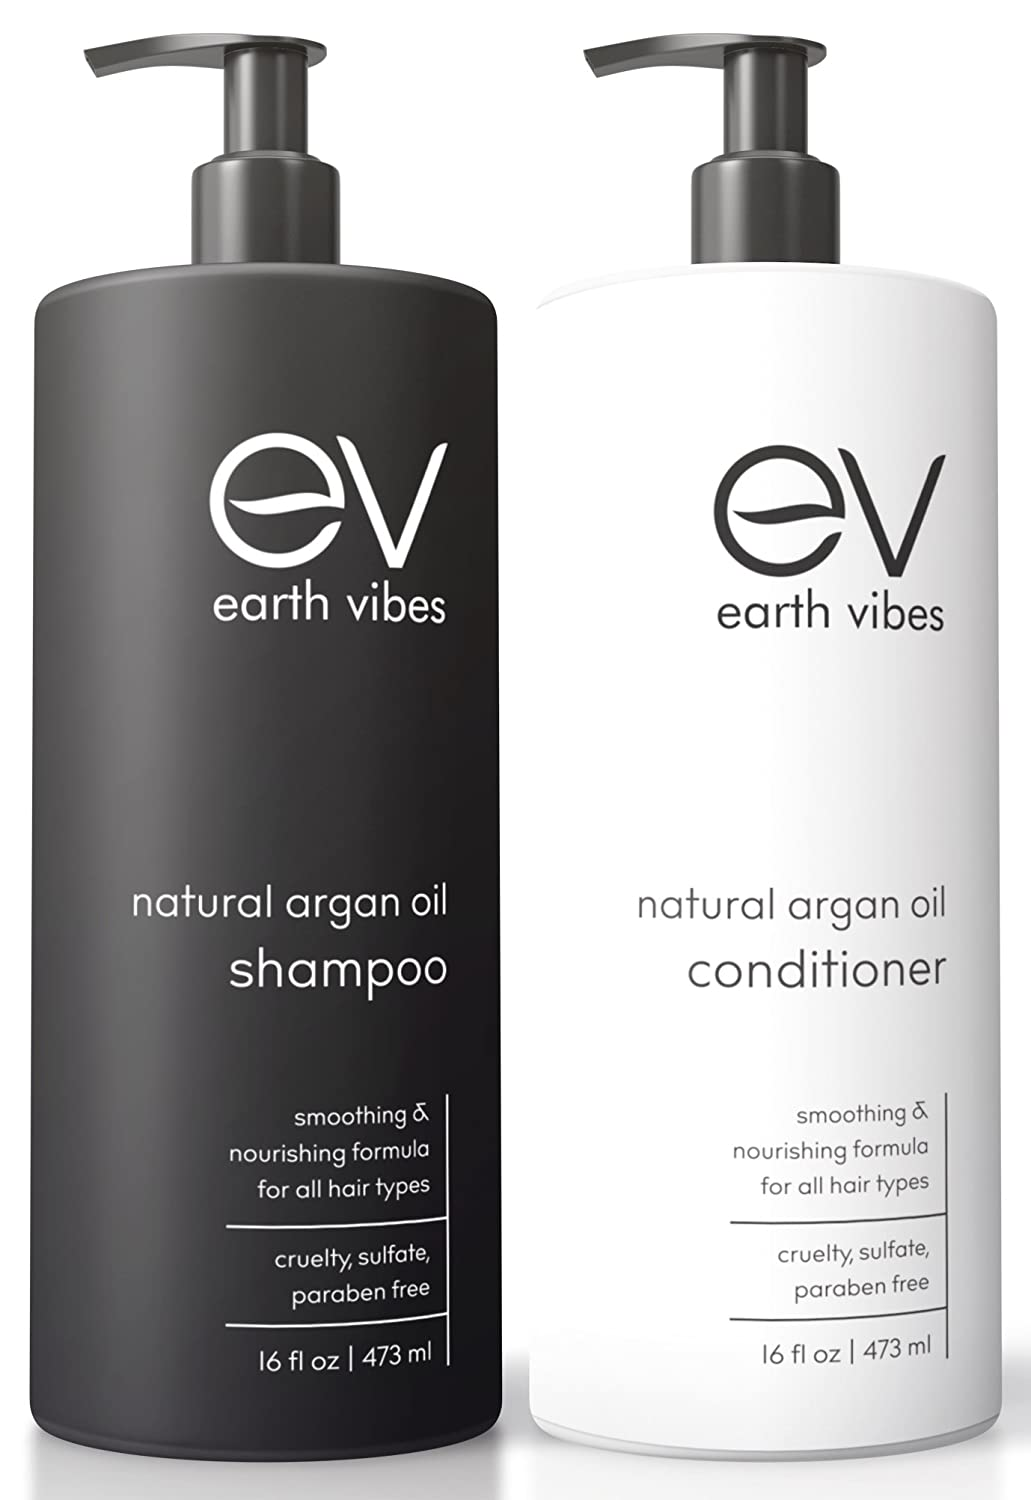 Earth Vibes Organic Natural Moroccan Argan Oil Shampoo & Conditioner Set - Cruelty, Sulfate & Paraben Free - Volumizing & Moisturizing - Gentle On Curly & Color Treated Hair - For Men & Women - 16oz